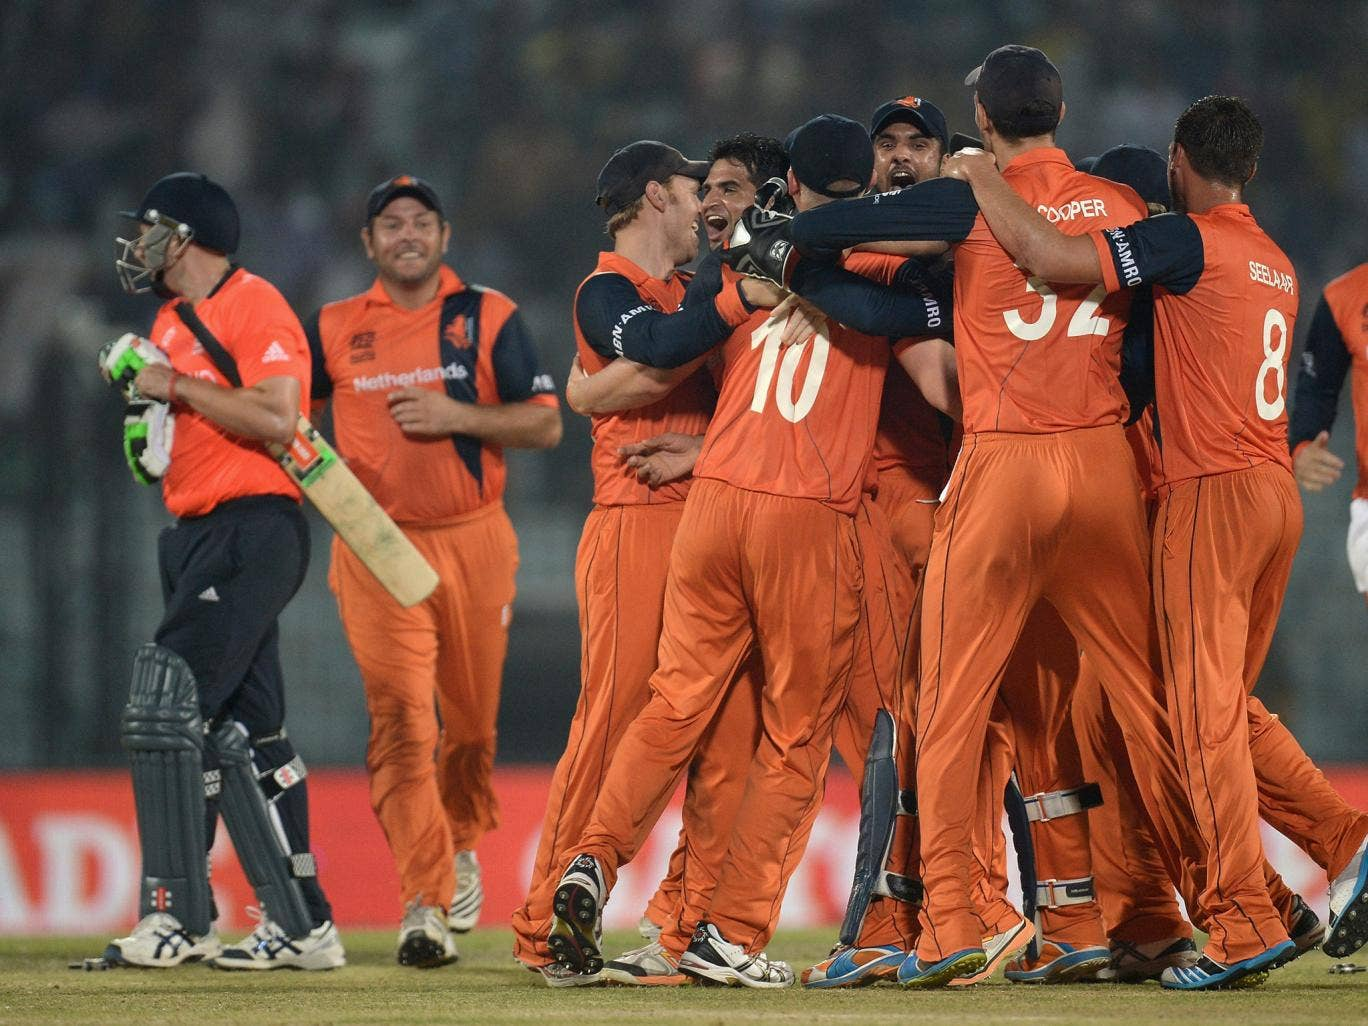 Netherlands players celebrate the final wicket of James Tredwell of England to win the ICC World Twenty20 match